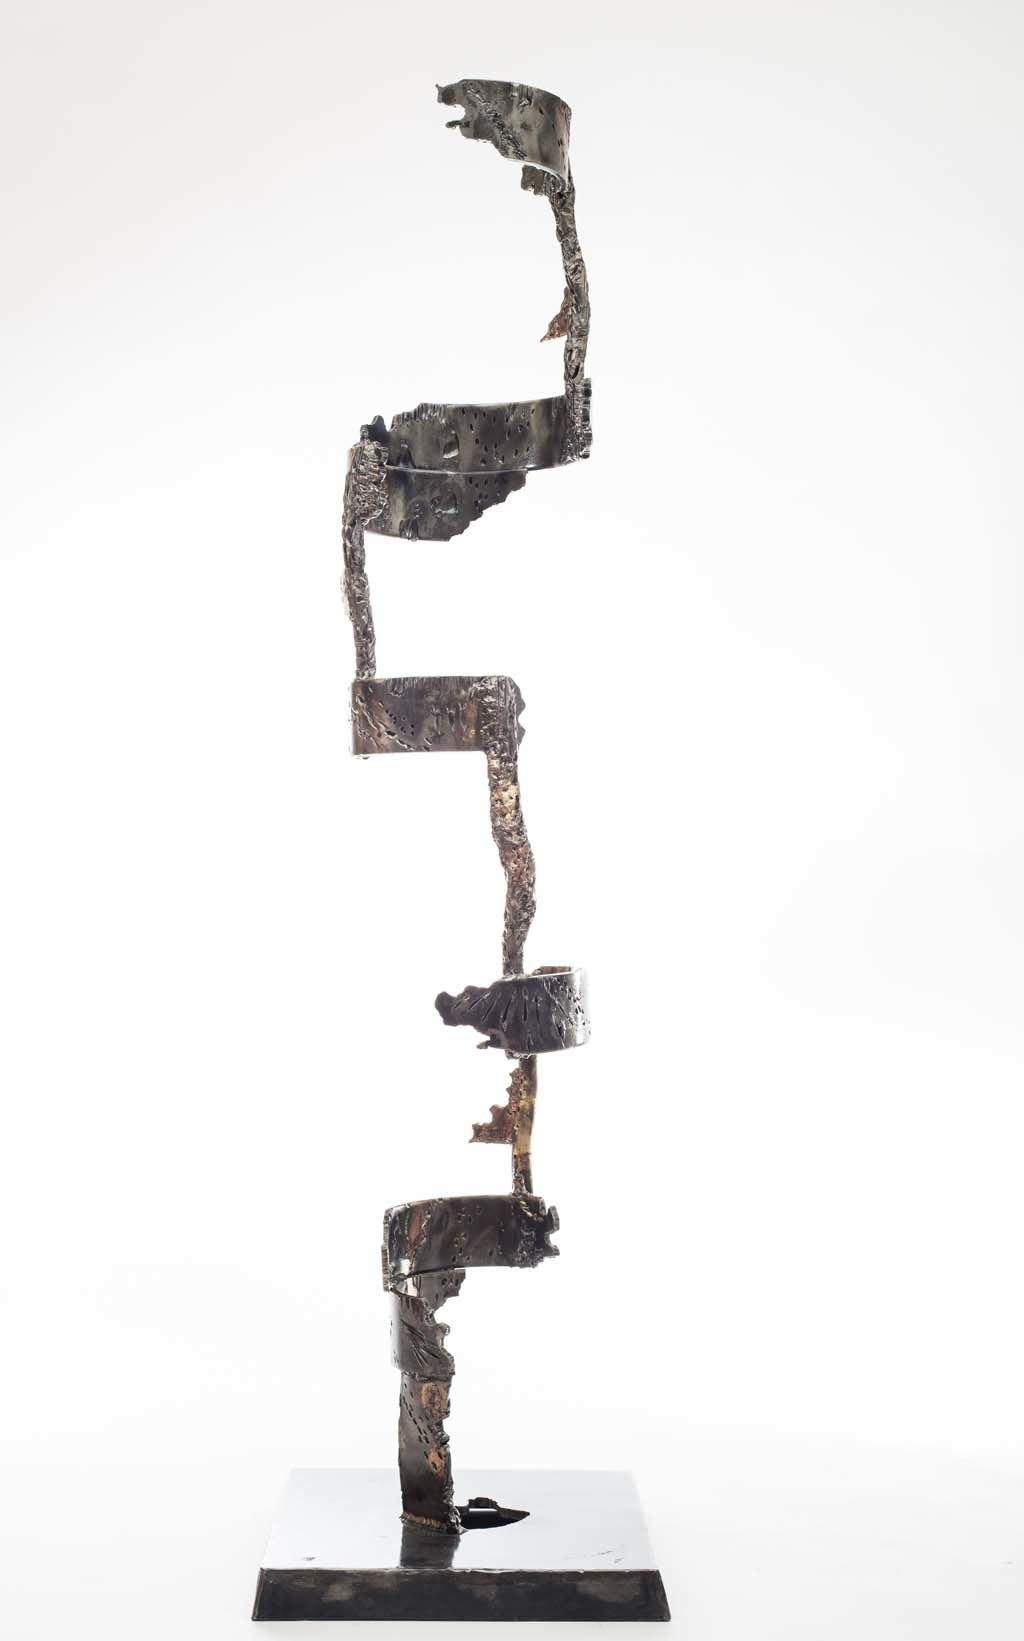 Insights II | 2014 | Iron & brass sculpture of the Israeli artist, sculptor Rami Ater